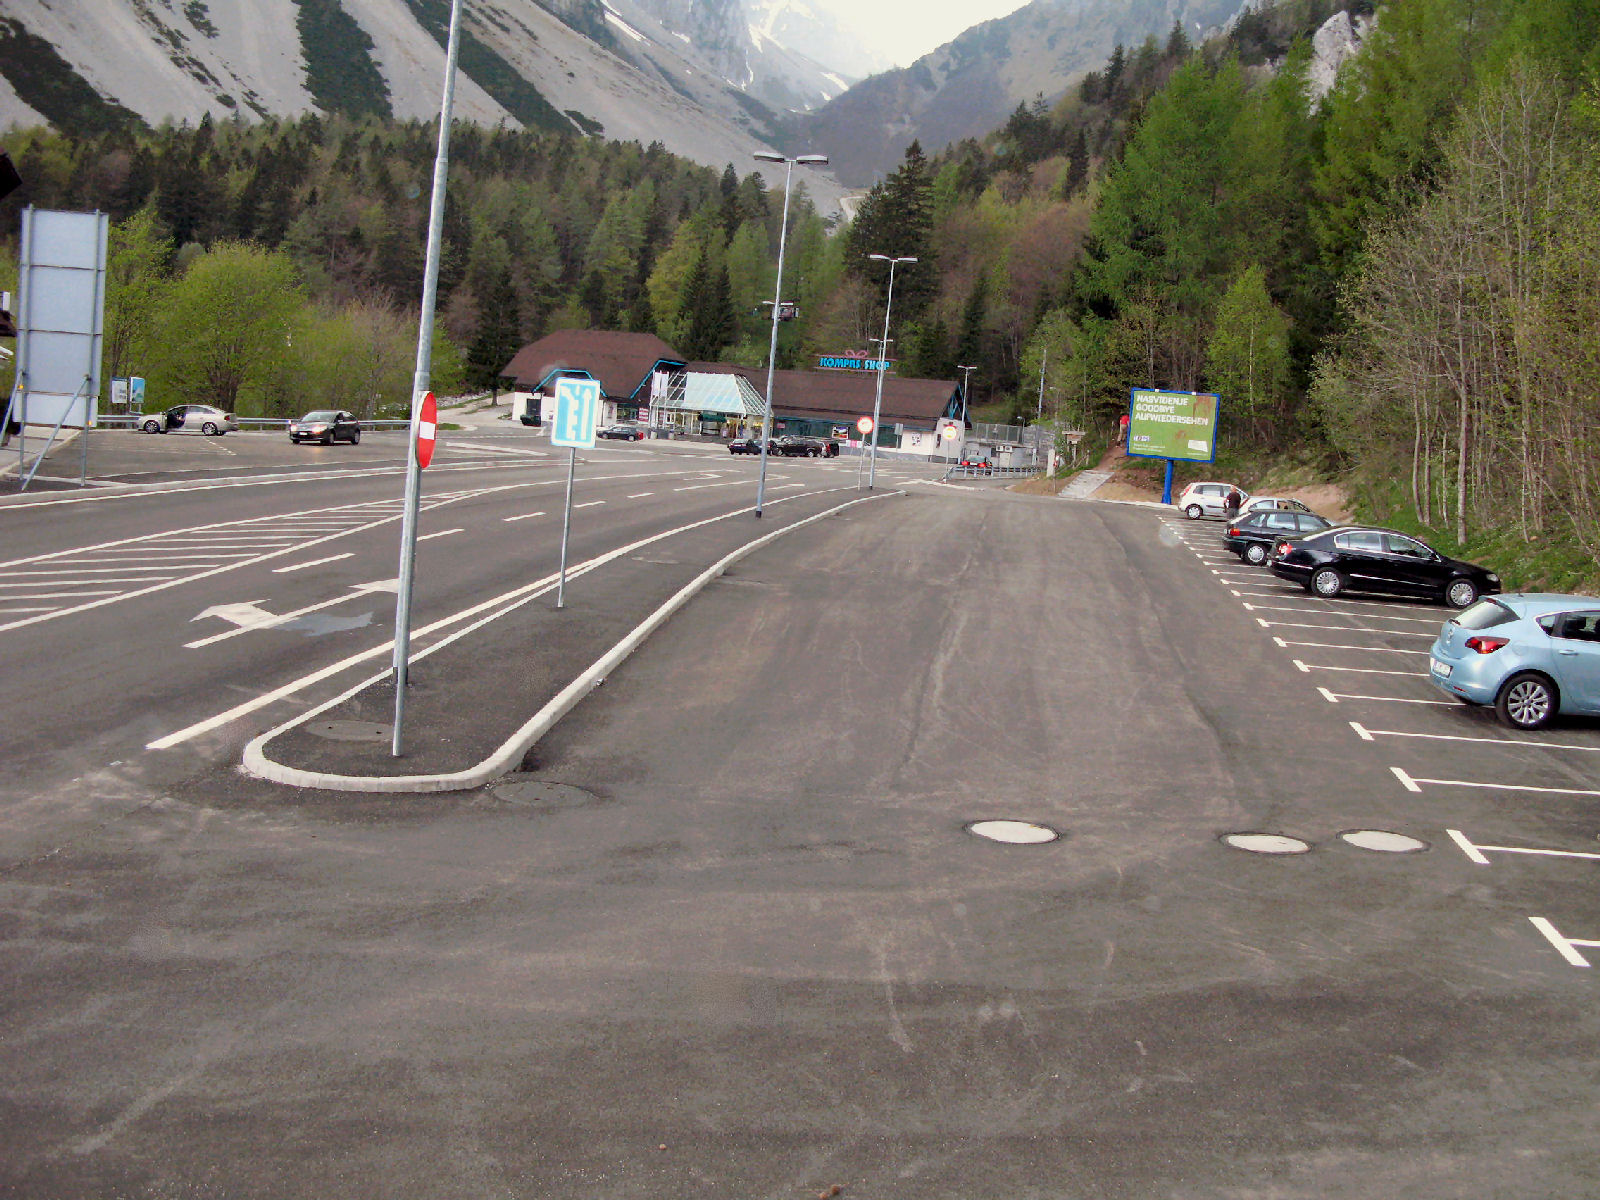 Parking lot at the Loibl Pass